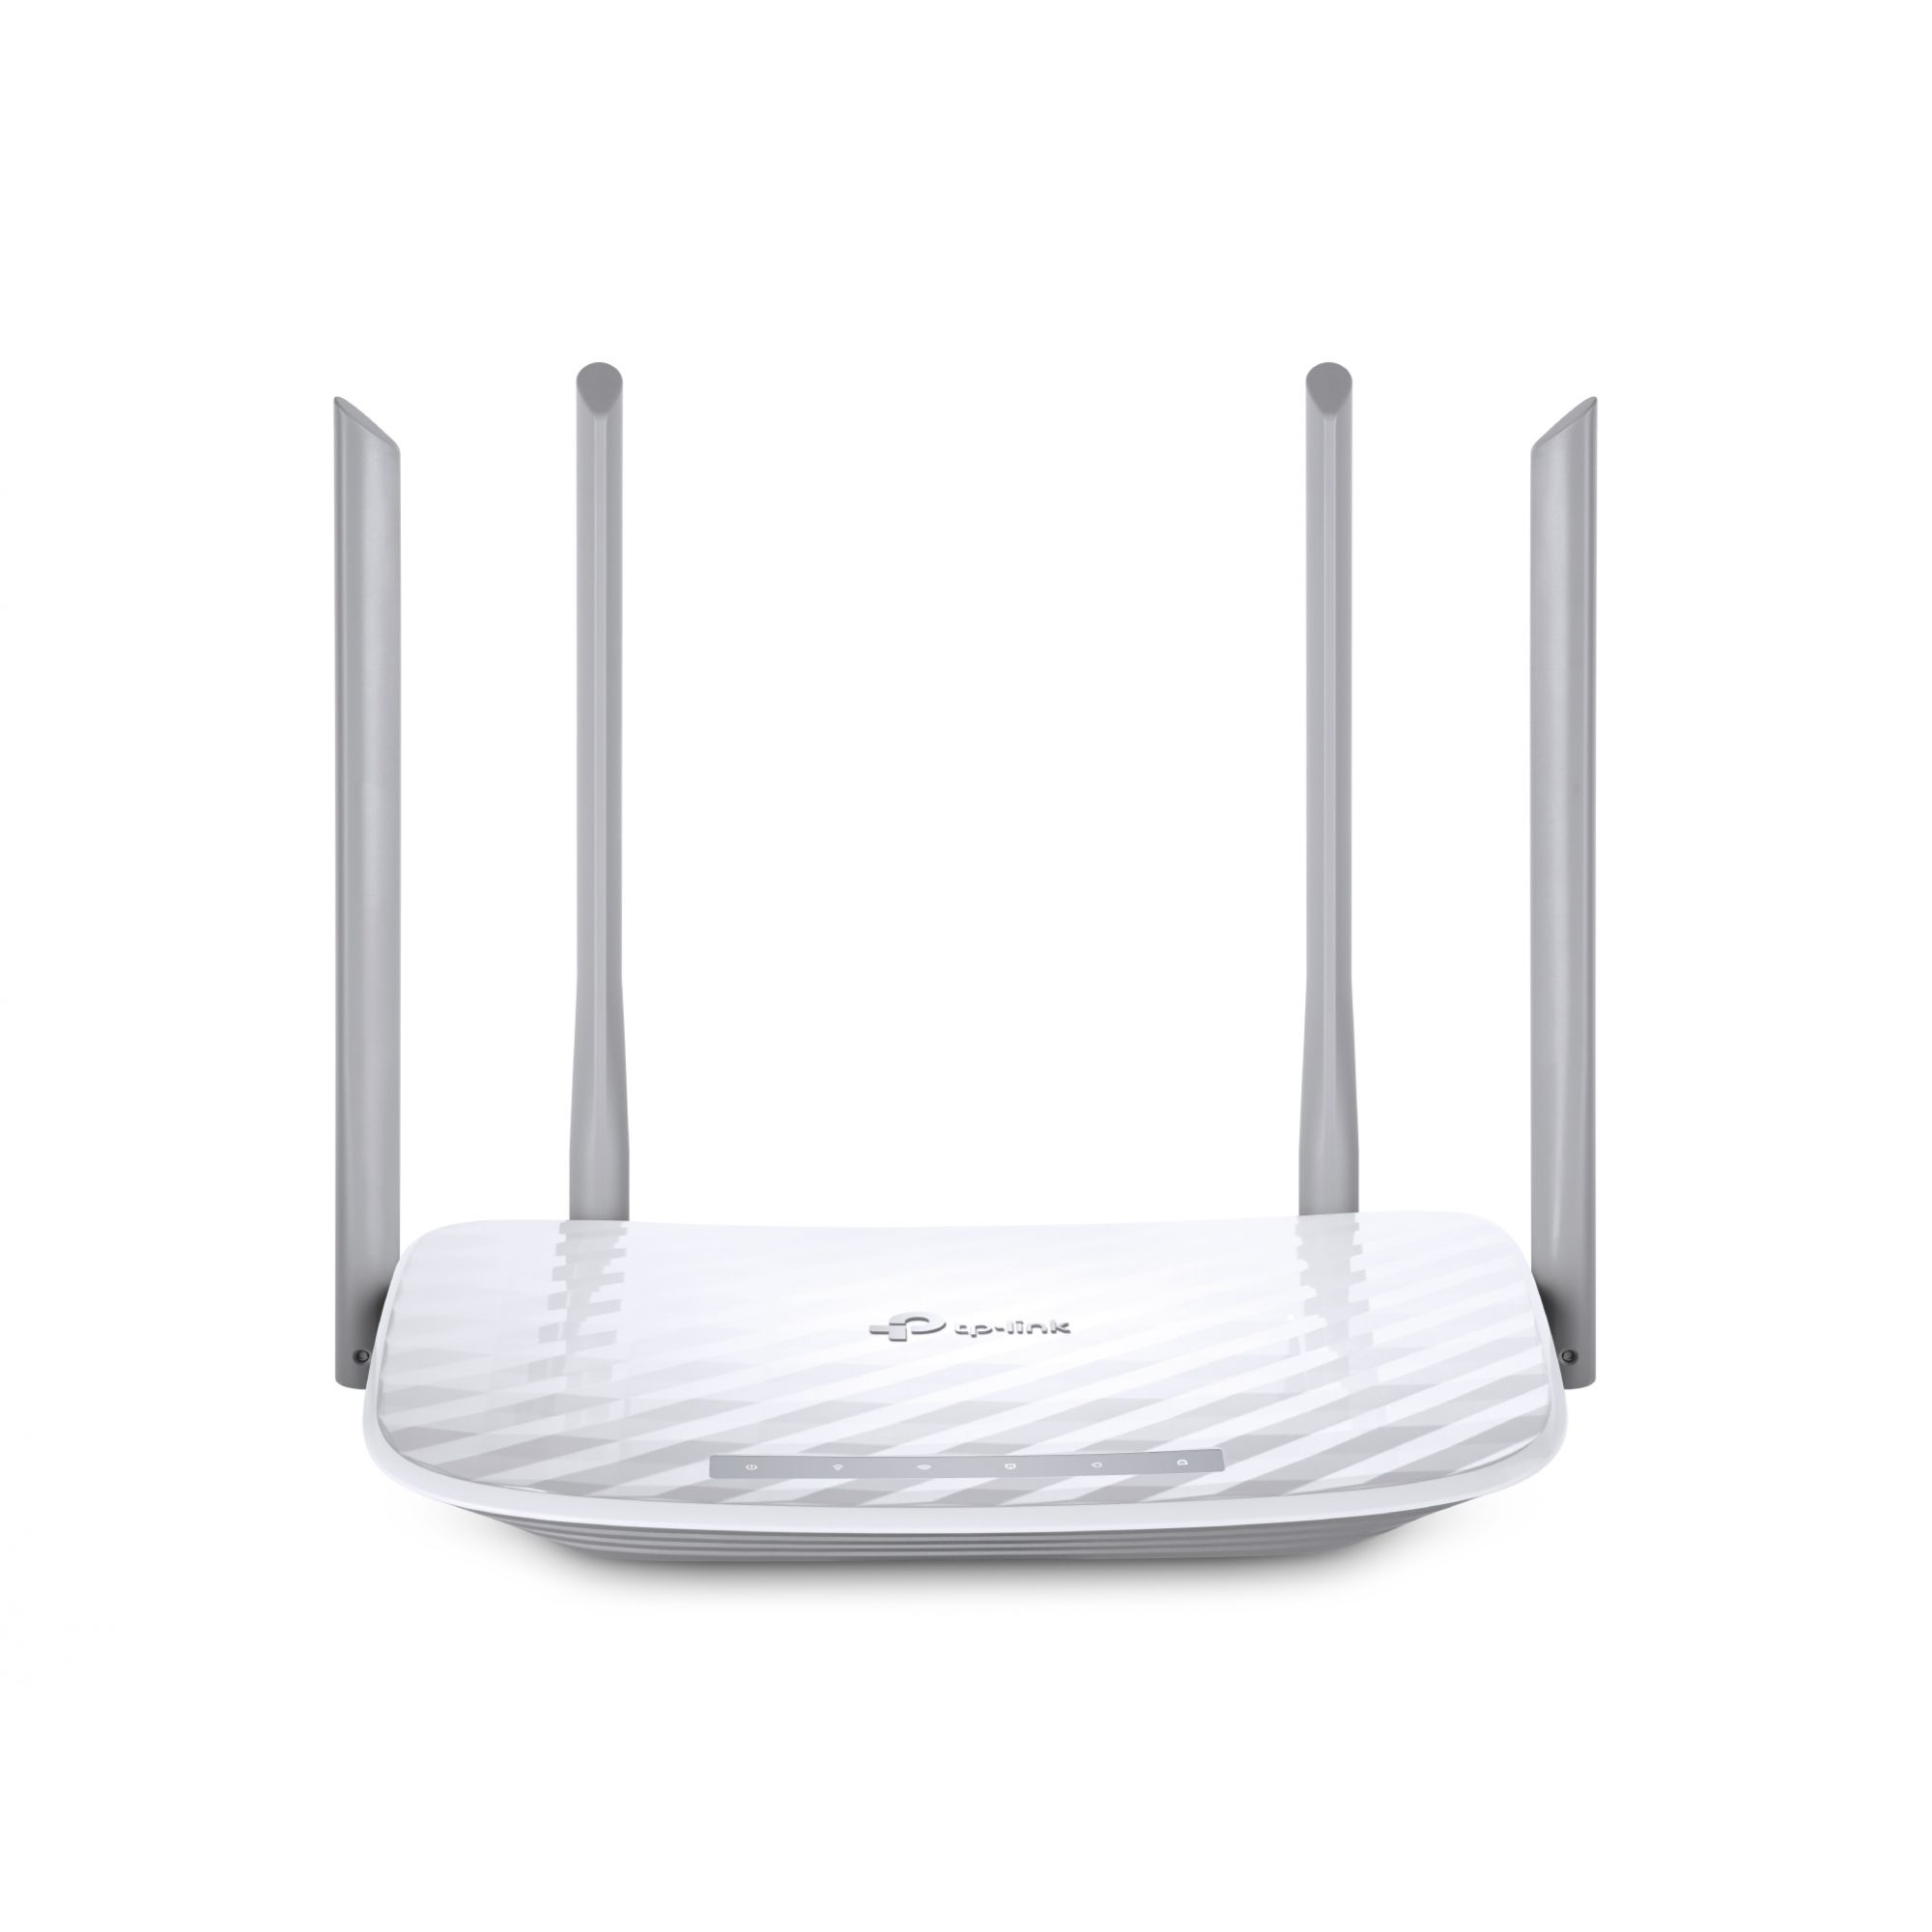 Roteador Archer C50 Wireless Ac1200  Tp-link  Wifi Dual Band